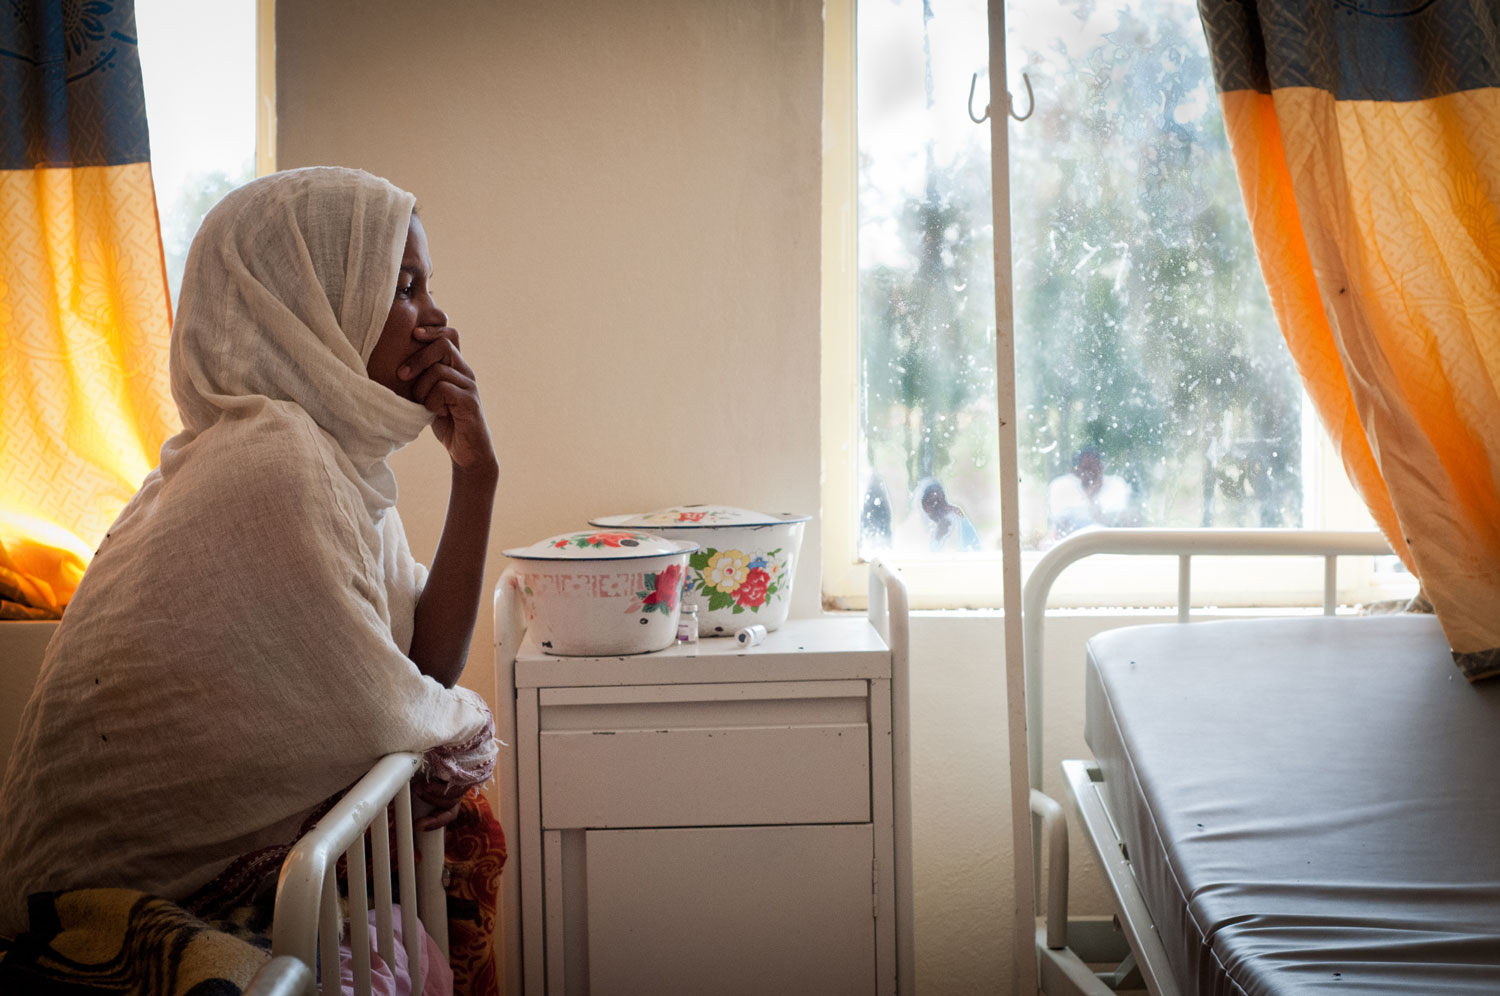 Sister: An Intimate Portrait of a Global Health Crisis